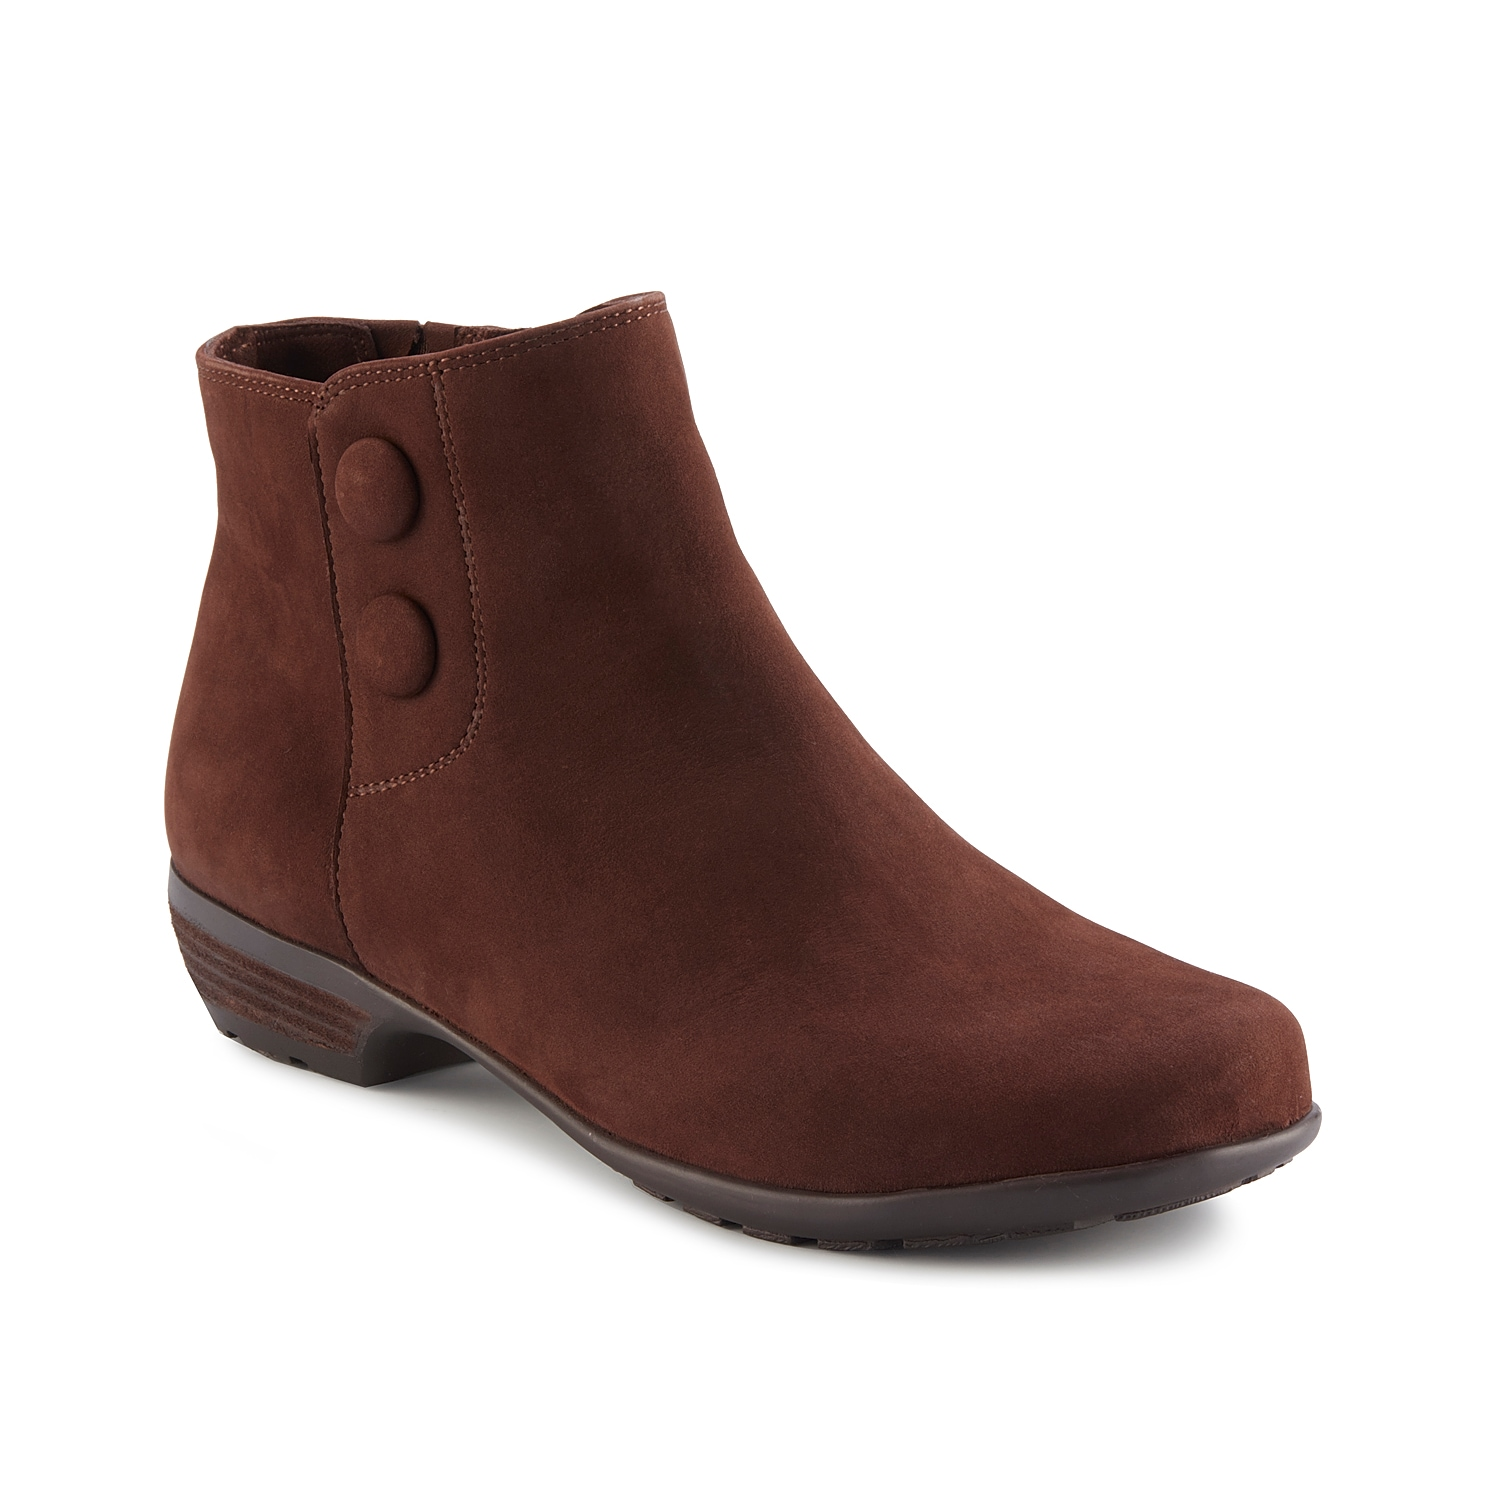 Once you zip into the Janette bootie from Walking Cradles, you\\\'ll never want to take them off. This ankle boot features a Tiny Pillows footbed to keep every step cushioned. Click here for Boot Measuring Guide.